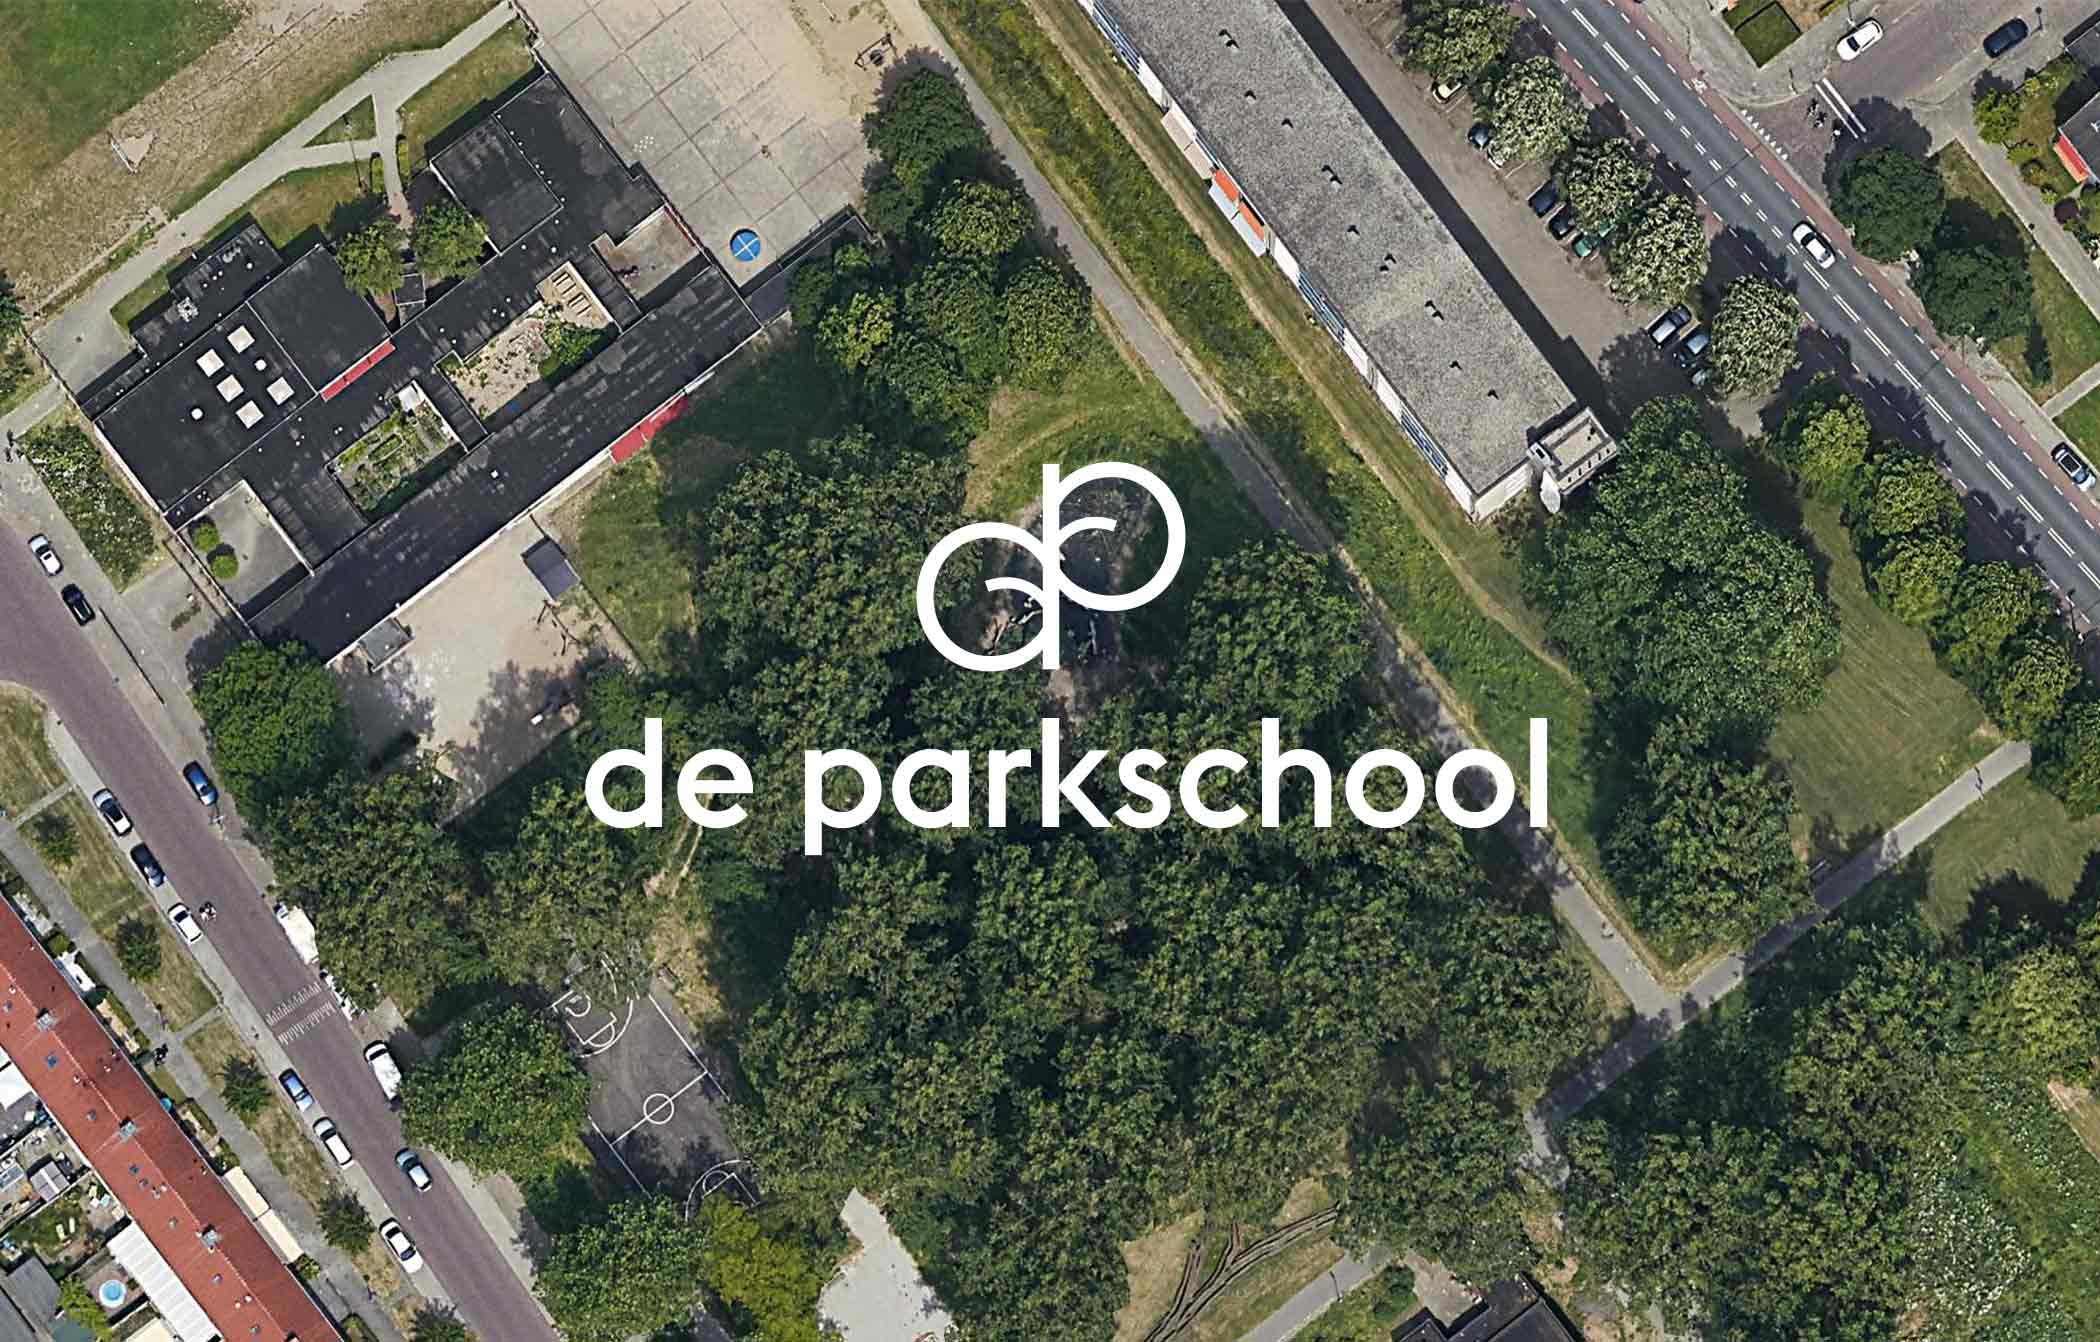 aerial image of De Parkschool with logo